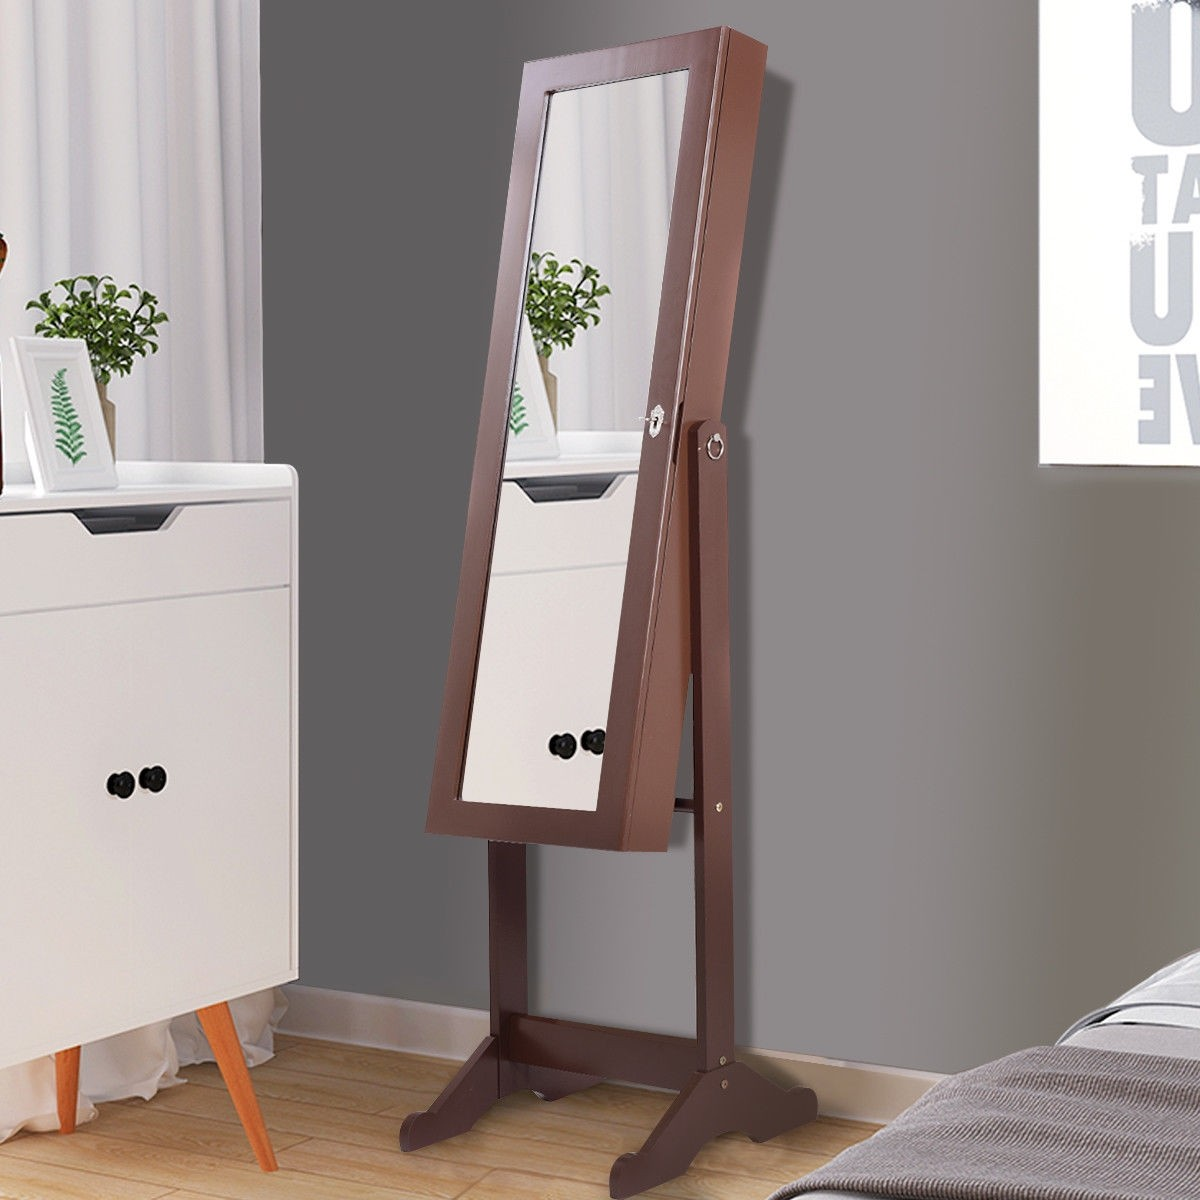 Lockable Armoire Storage Mirrored Jewelry Cabinet w/ LED Light